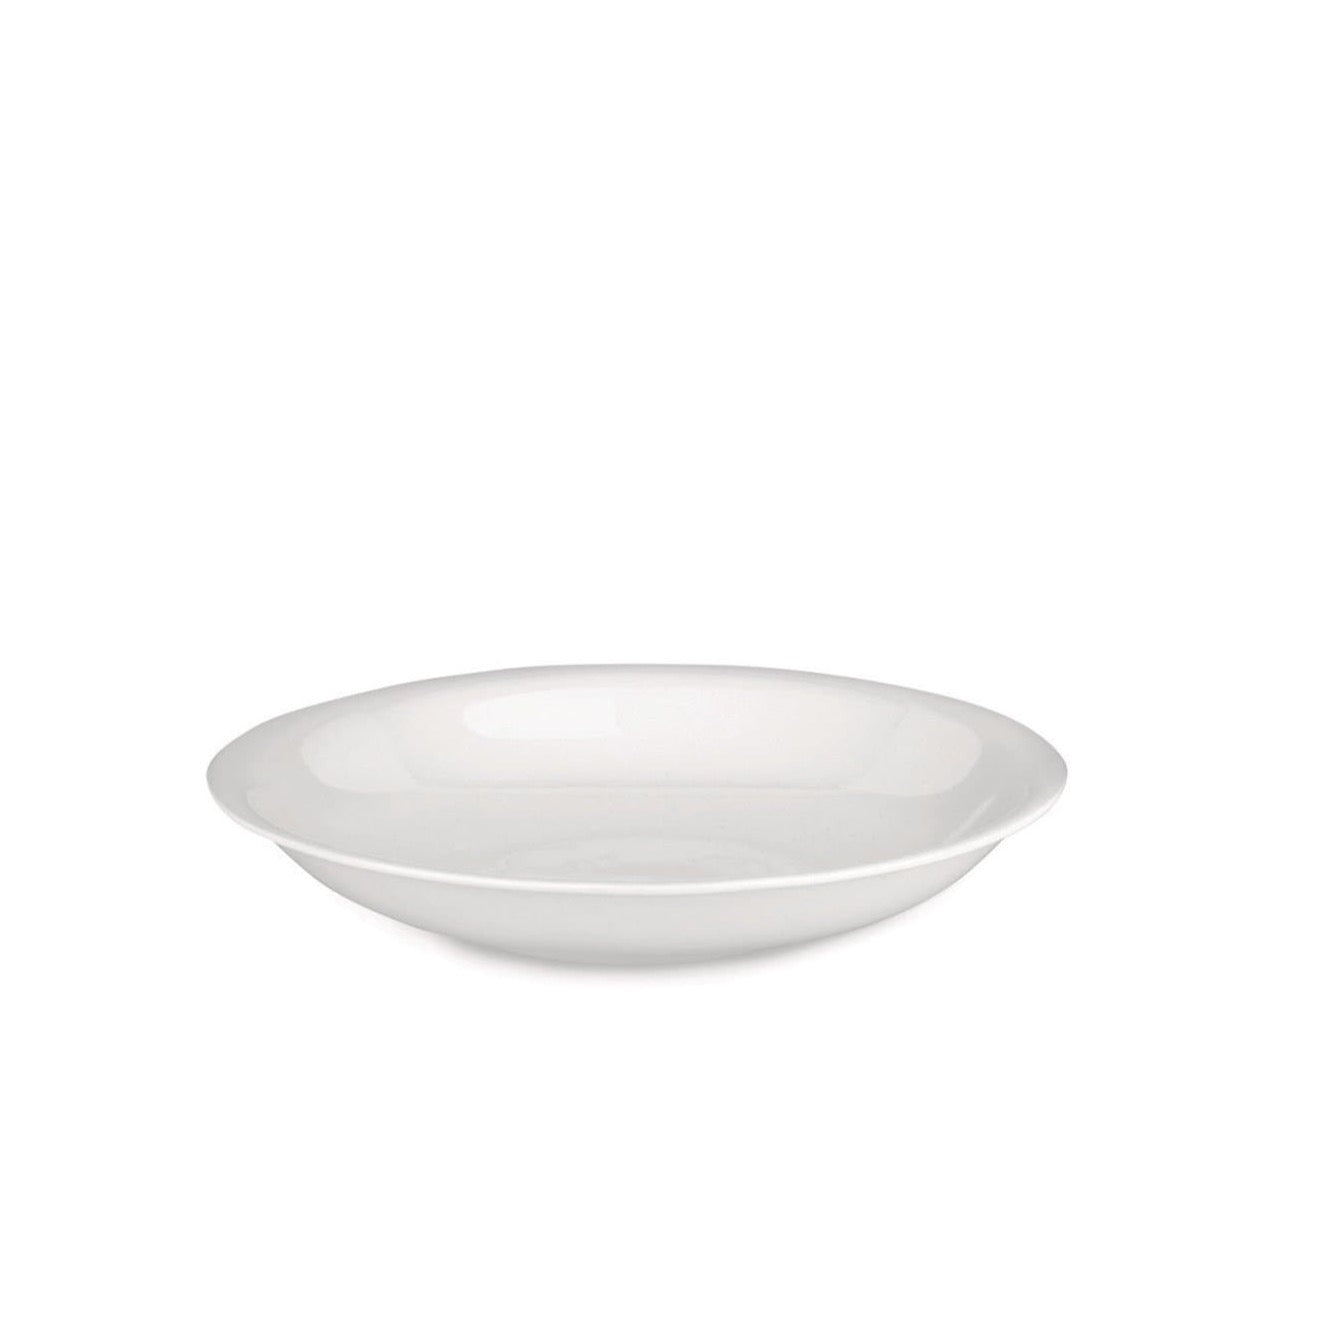 Alessi Alessi All Time Soup Plate - White AGV29/2